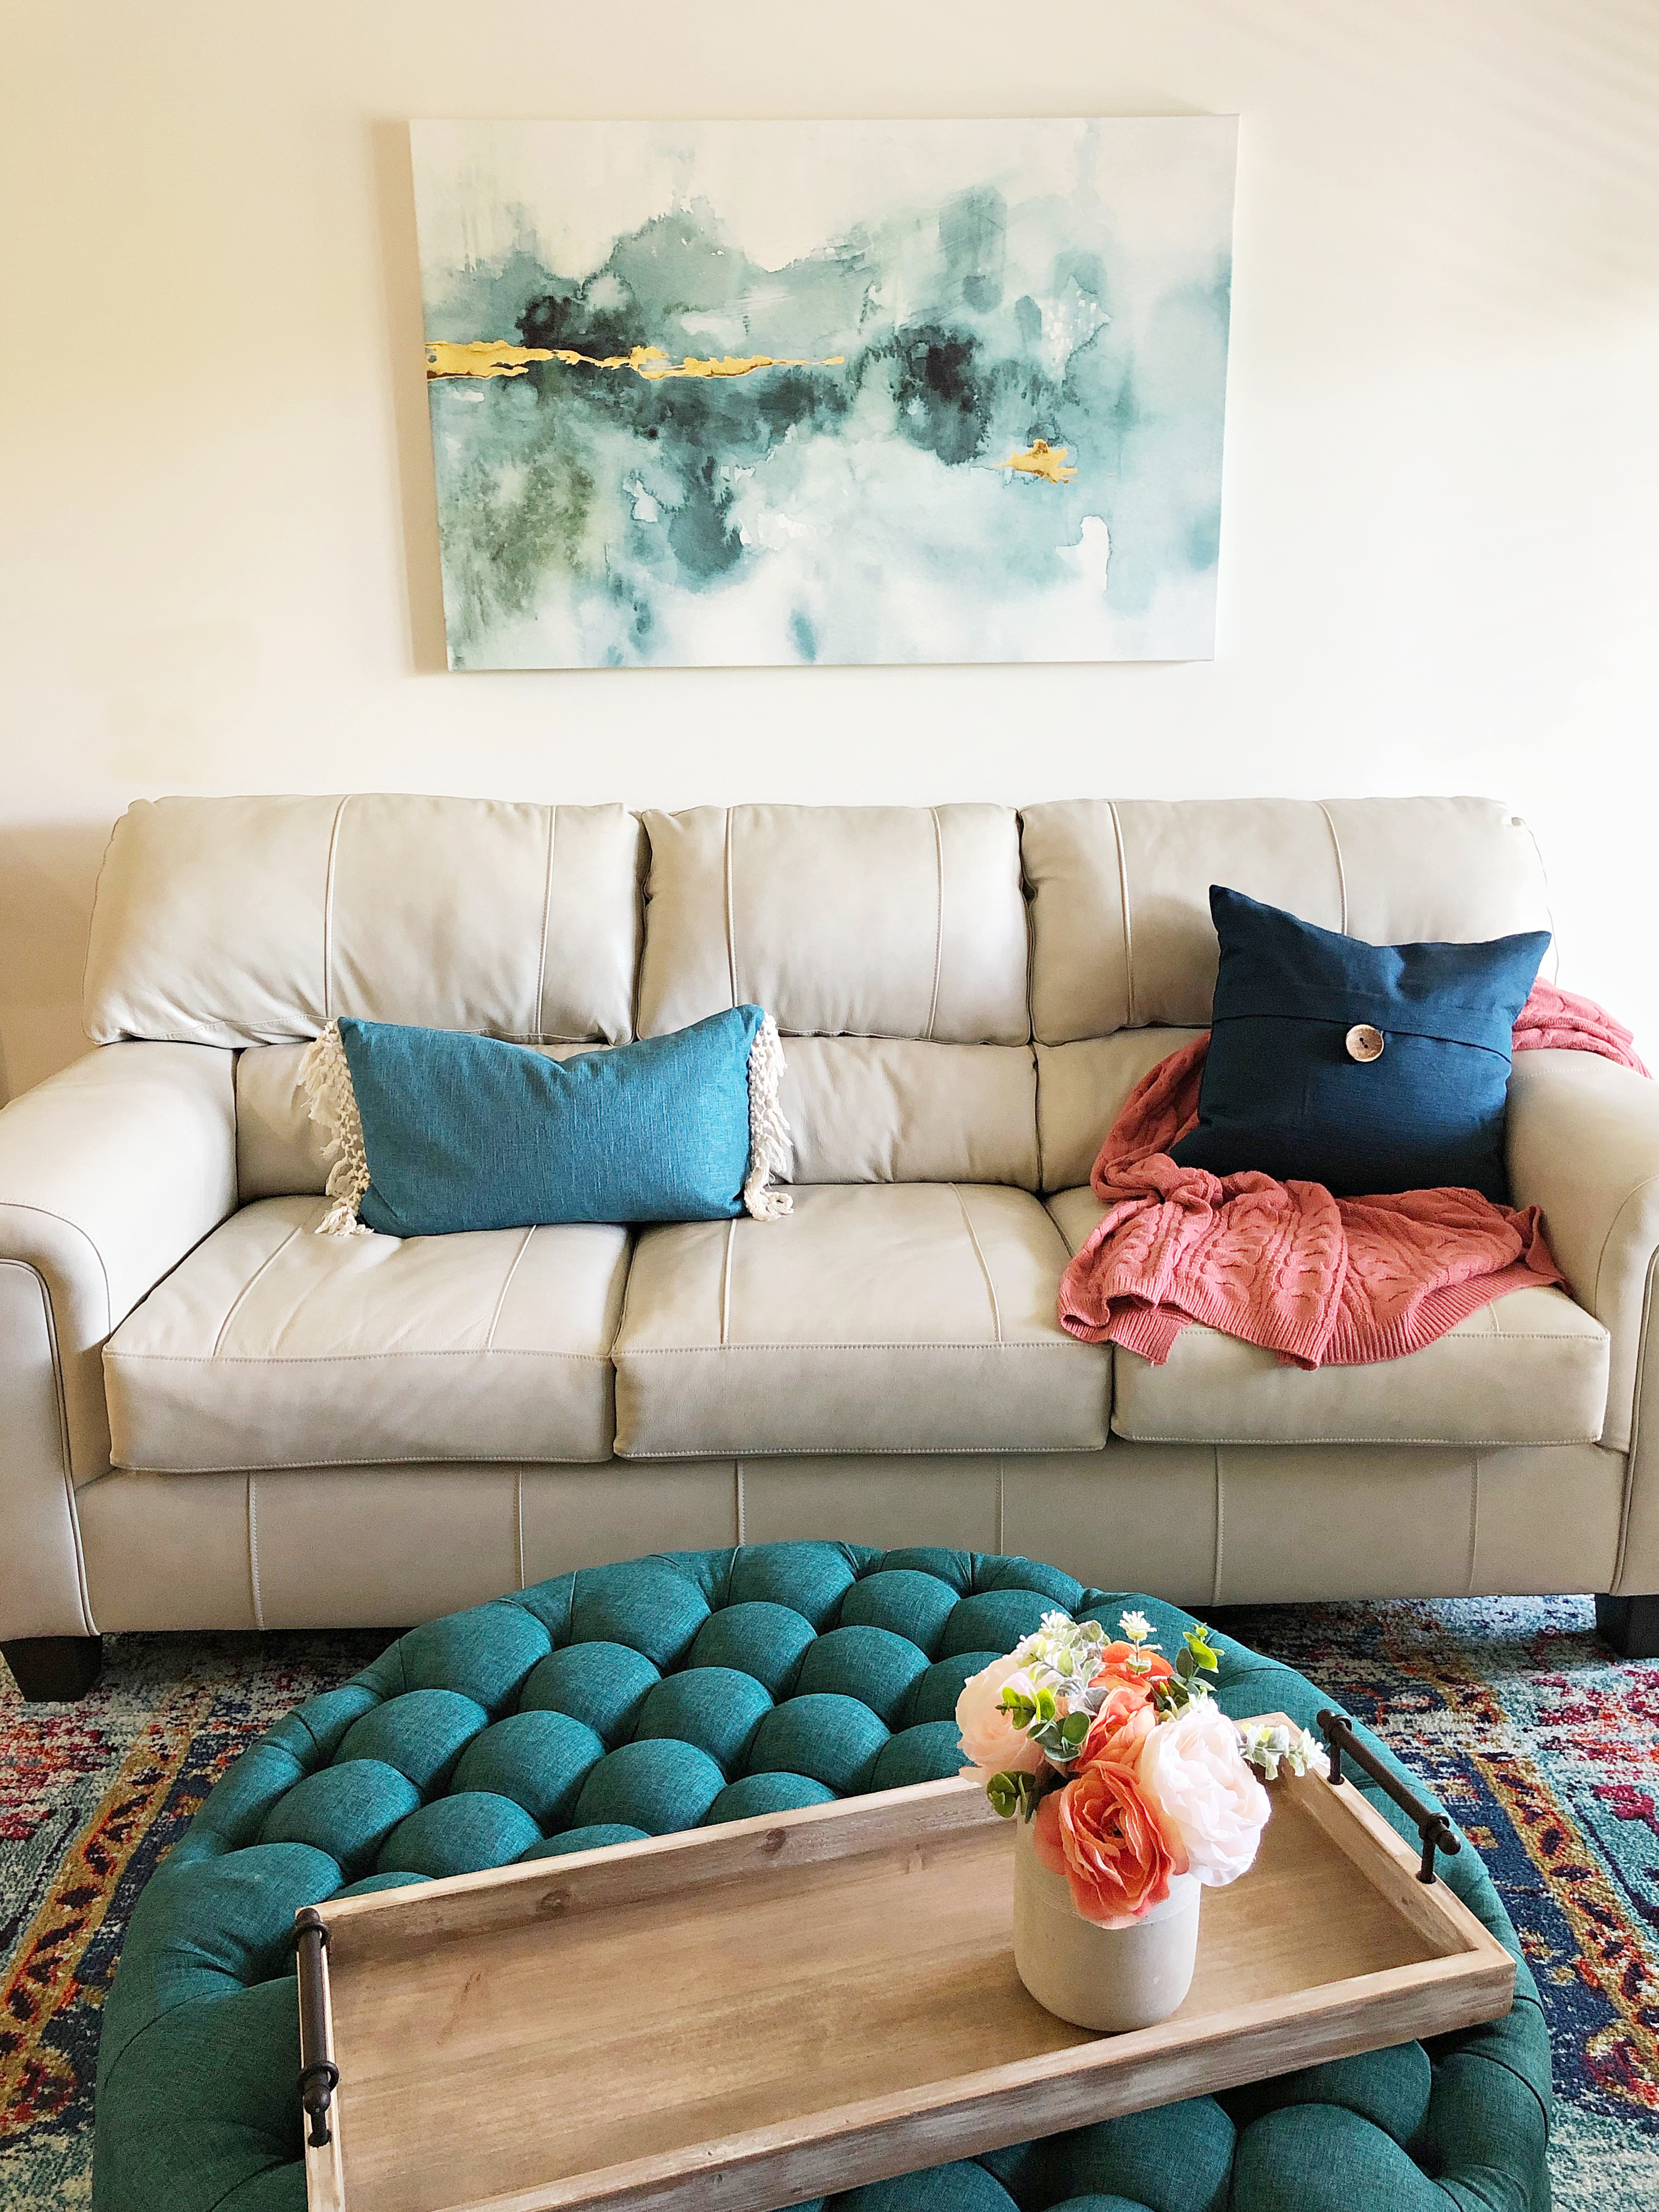 Living room teal accents - TEAL LIVING ROOM DECOR - LAKE CONDO or Beach